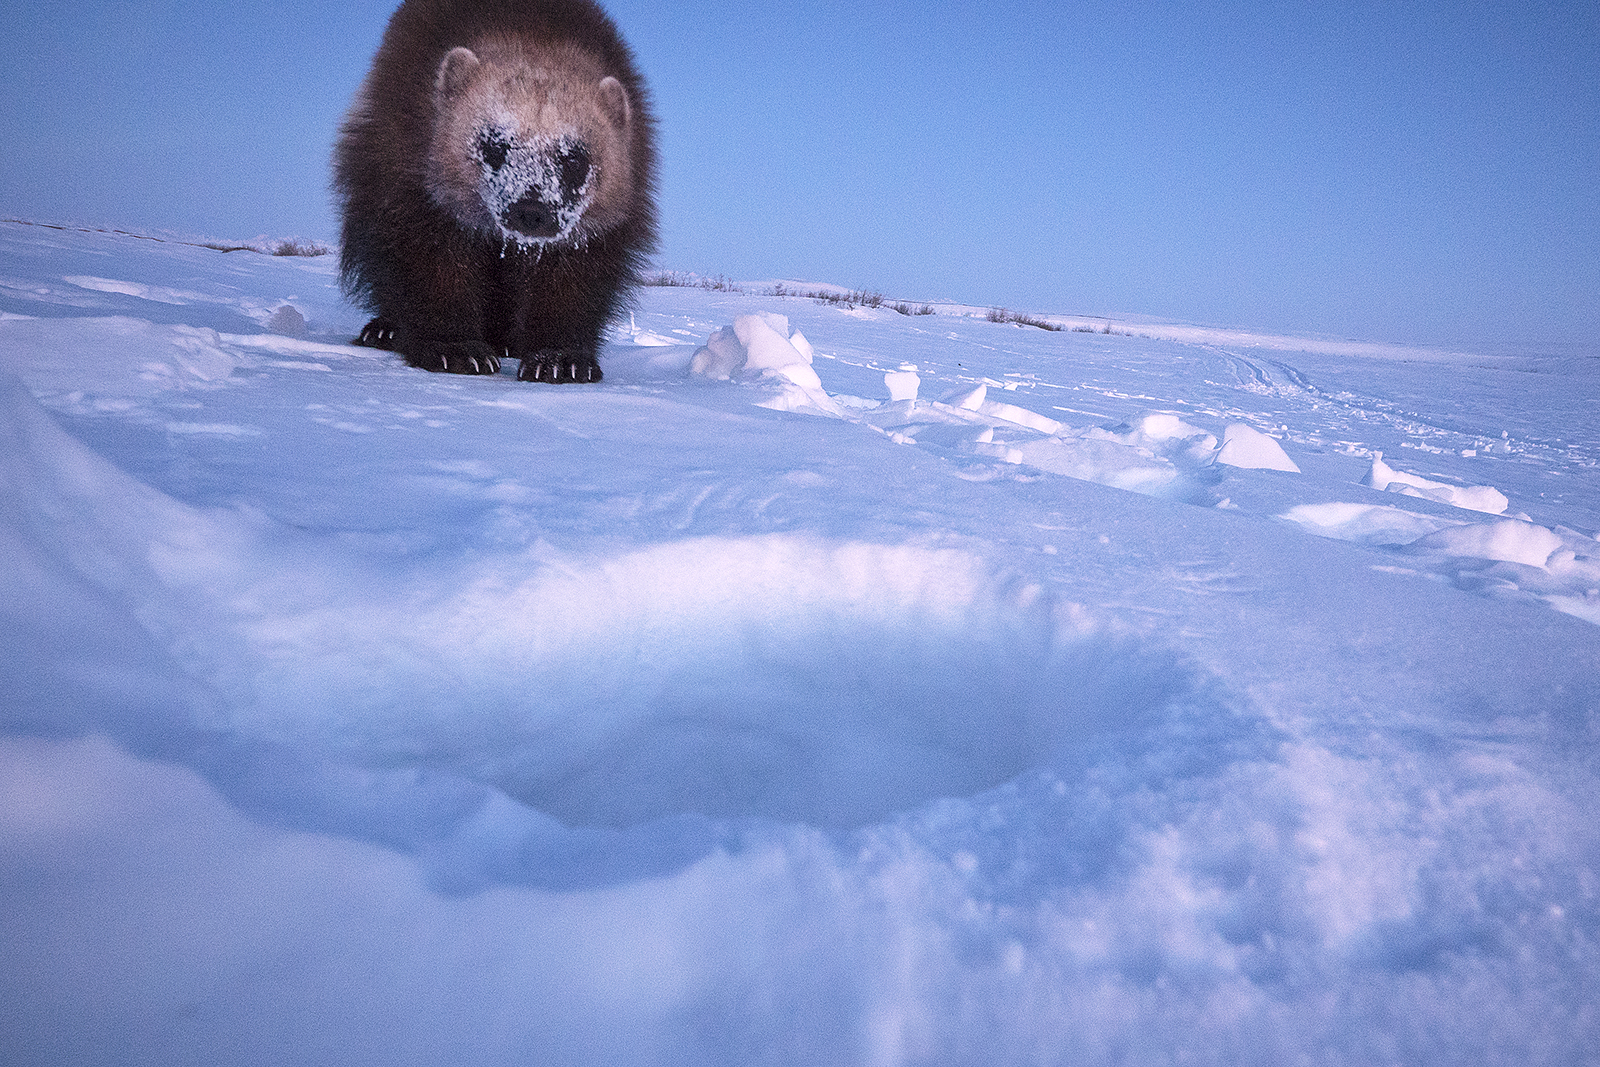 A wolverine stares at the camera, its face covered in ice and snow